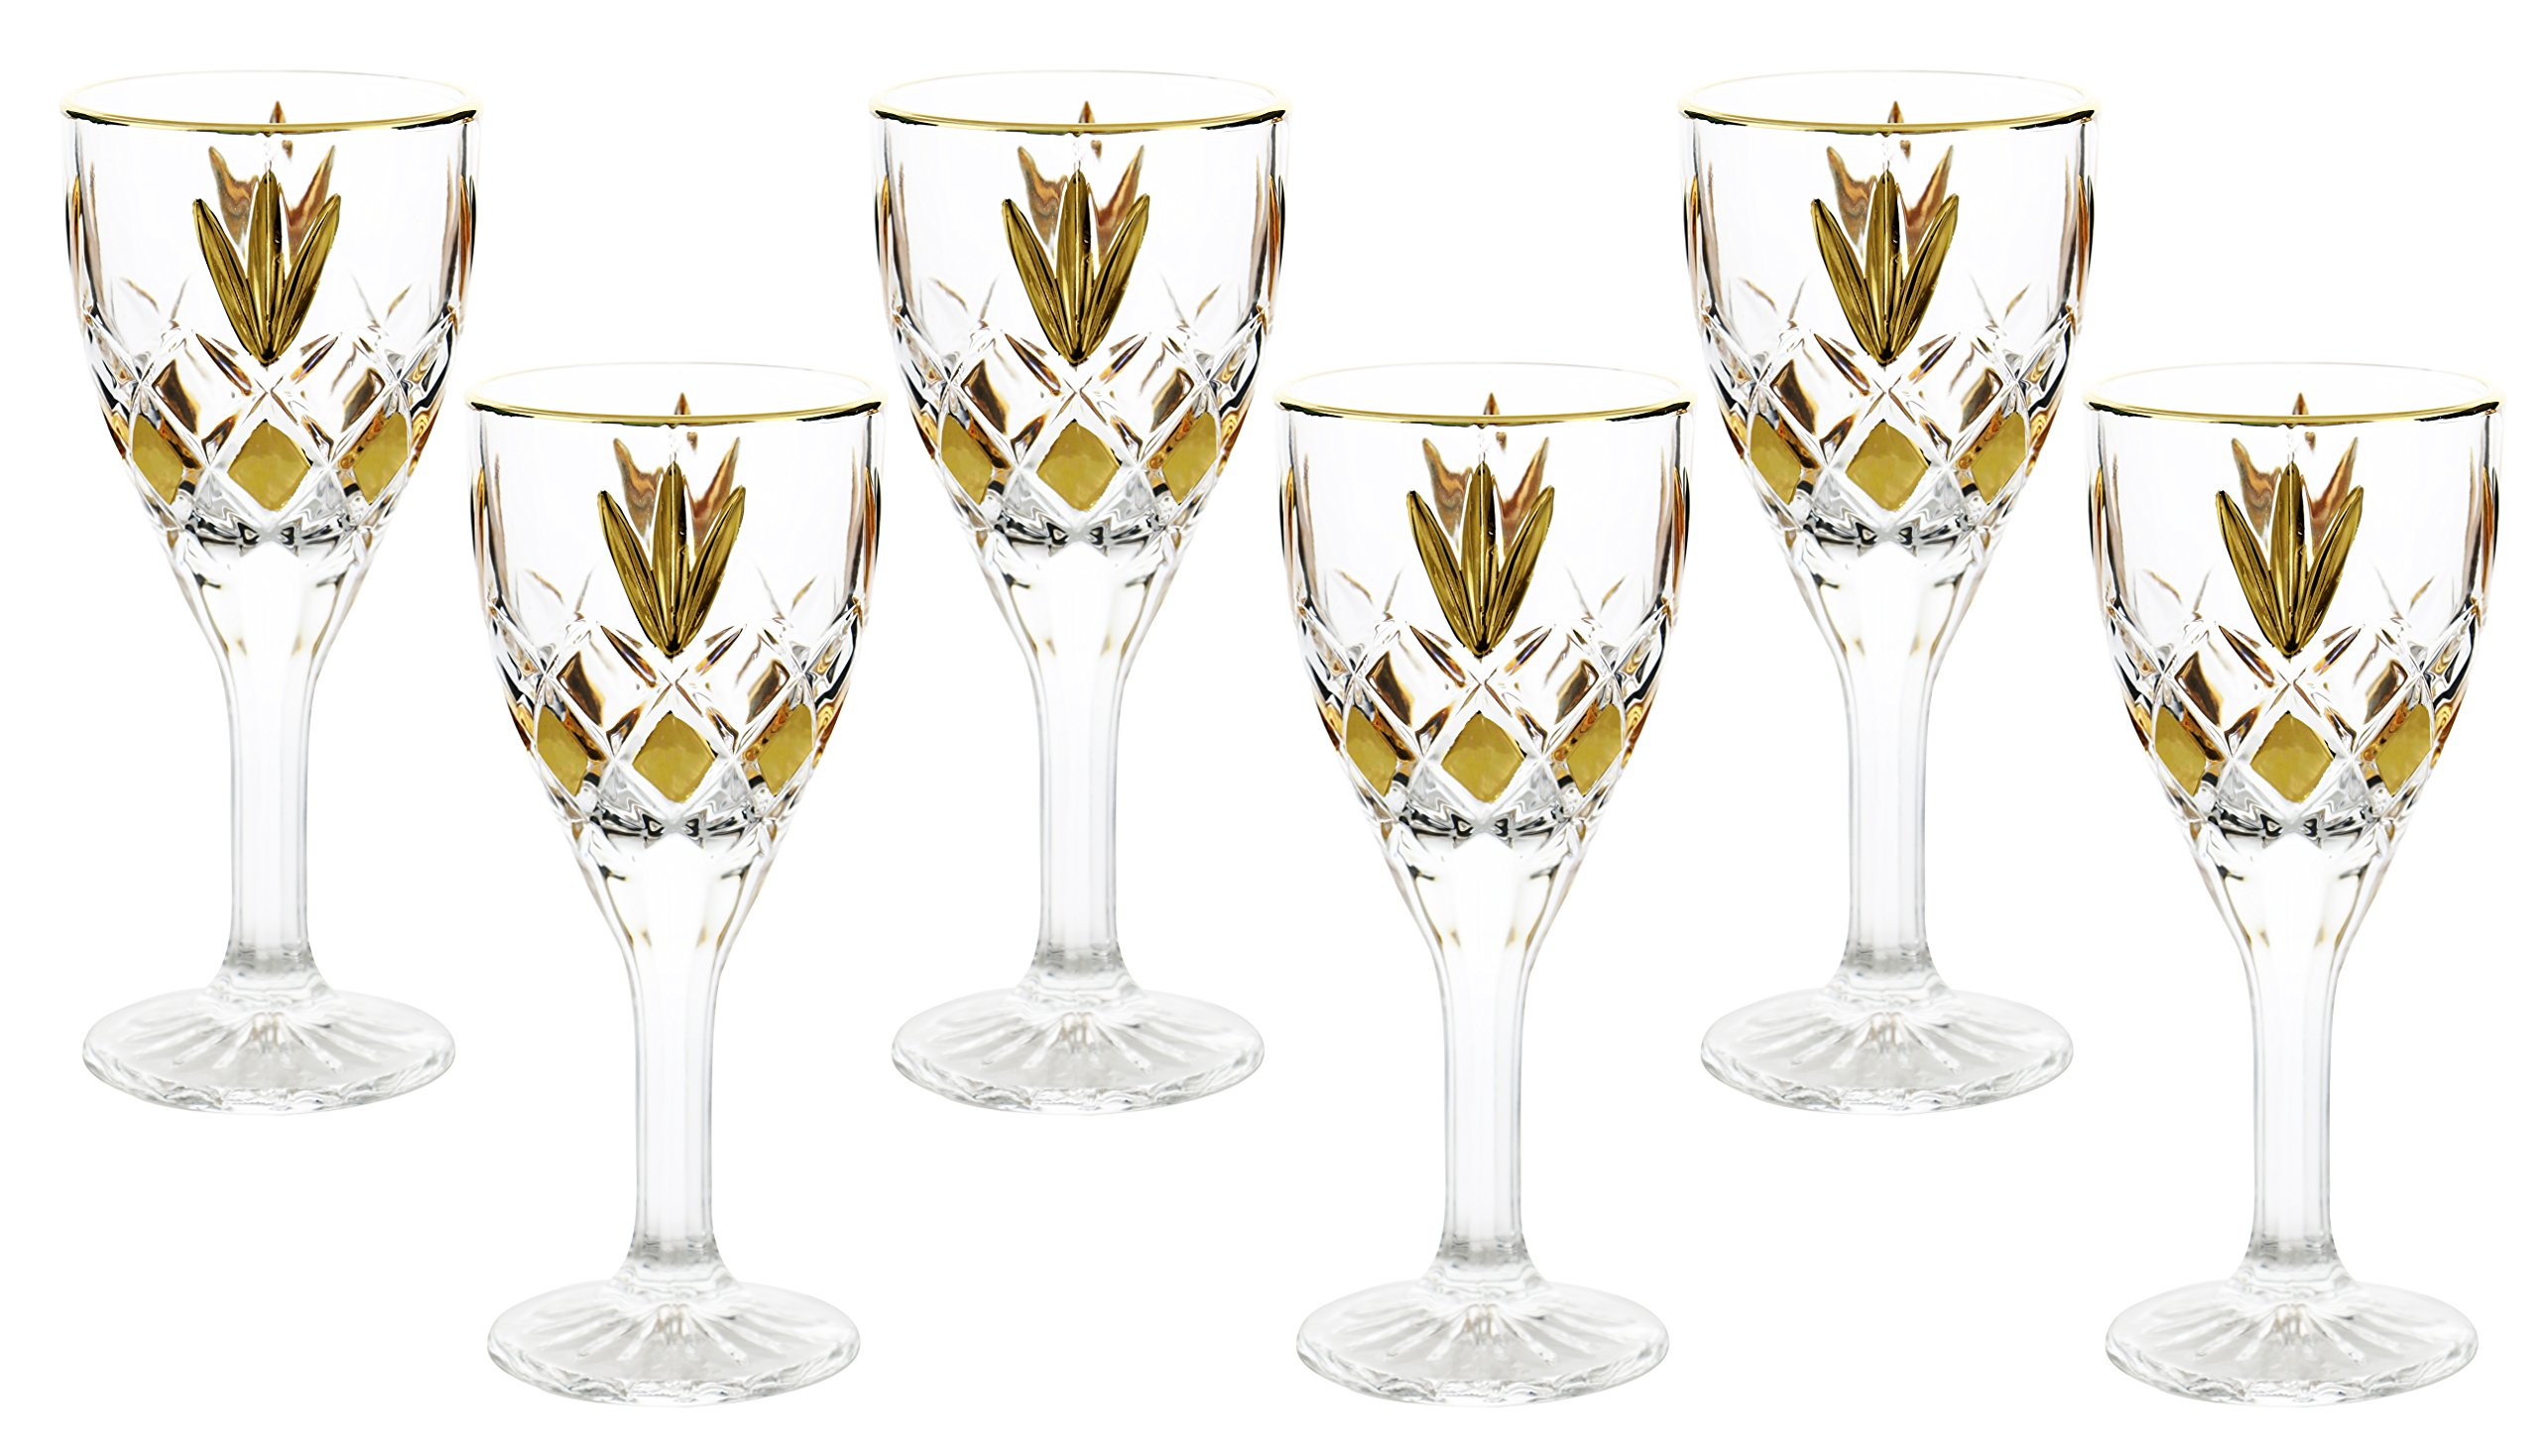 Fine Crystal Clear Glass Liquor Cordial Glass 6 Piece Gift Set